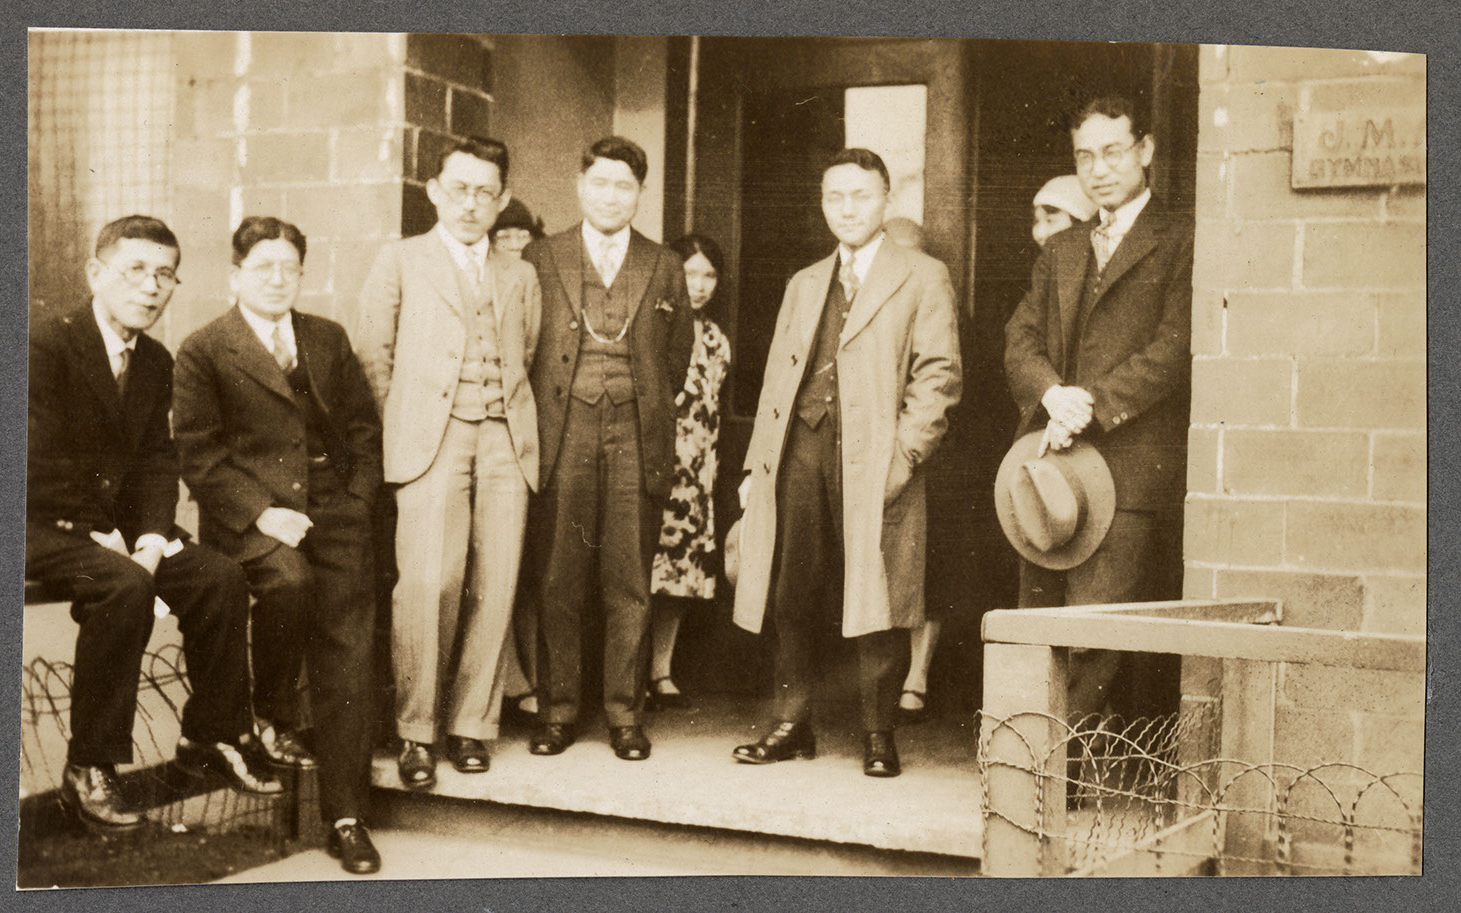 Group of men at the Powell Street gymnasium